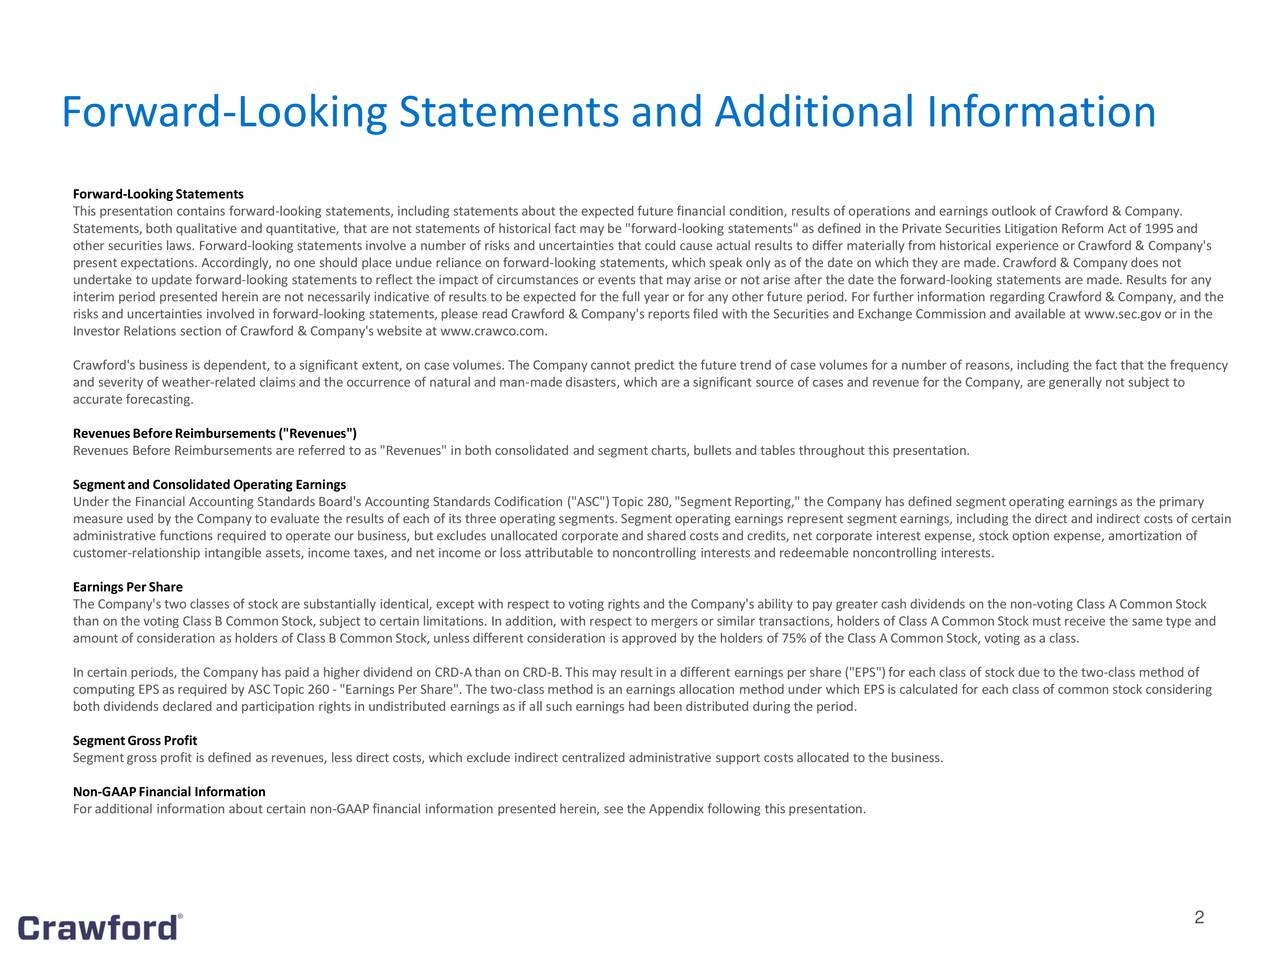 """Forward-LookingStatements This presentation contains forward-looking statements, including statements about the expected future financial condition, results of operations and earnings outlook of Crawford & Company. Statements, both qualitative and quantitative, that are not statements of historical fact may be """"forward-looking statements"""" as defined in the Private Securities Litigation Reform Act of 1995and other securities laws. Forward-looking statements involve a number of risks and uncertainties that could cause actual results to differ materially from historical experience or Crawford & Company's present expectations. Accordingly, no one should place undue reliance on forward-looking statements, which speak only as of the date on which they are made. Crawford & Company does not undertake to update forward-looking statements to reflect the impact of circumstances or events that may arise or not arise after the date the forward-looking statements are made. Results for any interim period presented herein are not necessarily indicative of results to be expected for the full year or for any other future period. For further information regarding Crawford & Company, and the risks and uncertainties involved in forward-looking statements, please read Crawford & Company's reports filed with the Securities and Exchange Commission and available at www.sec.gov or in the Investor Relations section of Crawford & Company's website at www.crawco.com. Crawford's business is dependent, to a significant extent, on case volumes. The Company cannot predict the future trend of case volumes for a number of reasons, including the fact that the frequency and severity of weather-related claims and the occurrence of natural and man-made disasters, which are a significant source of cases and revenue for the Company, are generally not subject to accurate forecasting. RevenuesBeforeReimbursements(""""Revenues"""") Revenues Before Reimbursements are referred to as """"Revenues"""" in both consolidated an"""